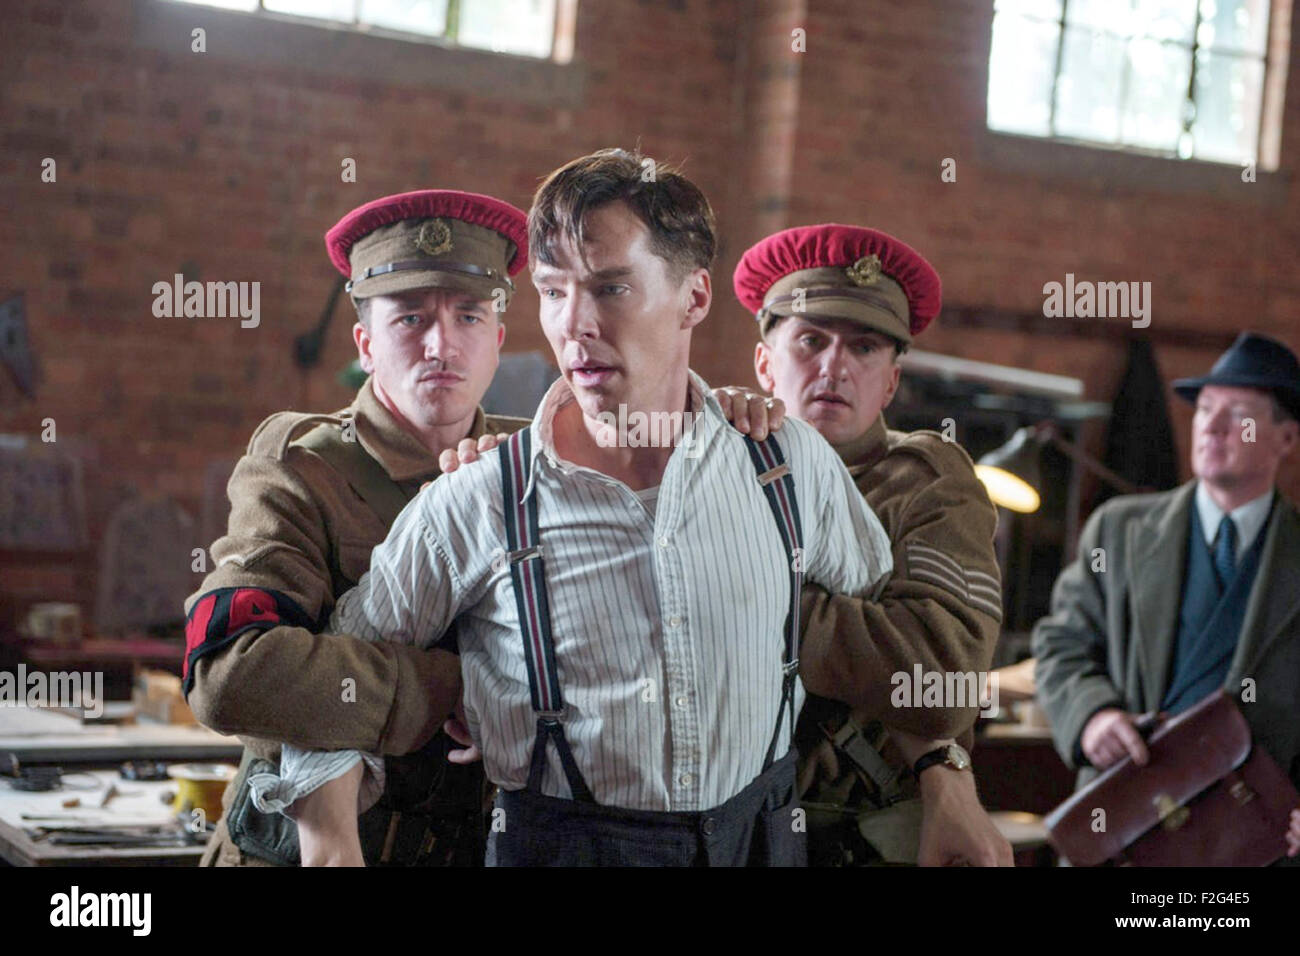 The Imitation Game 2014 Weinstein Company Film With Benedict Stock Photo Alamy